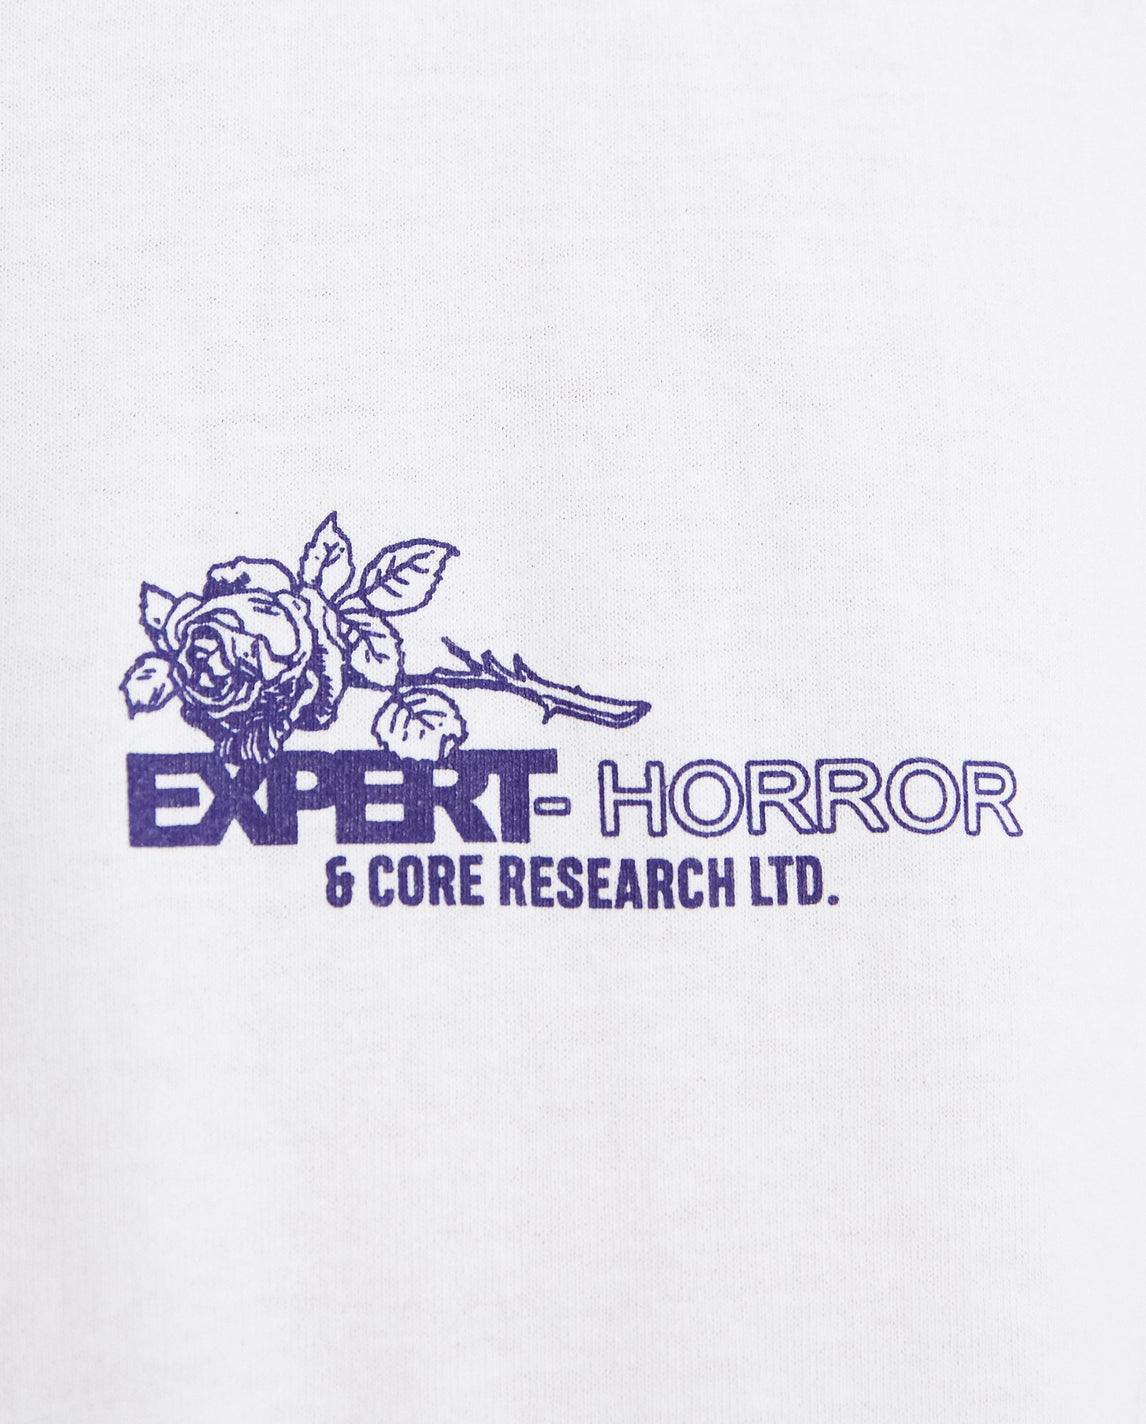 Core Racer 2021 T-Shirt - White UNISEX EXPERT HORROR